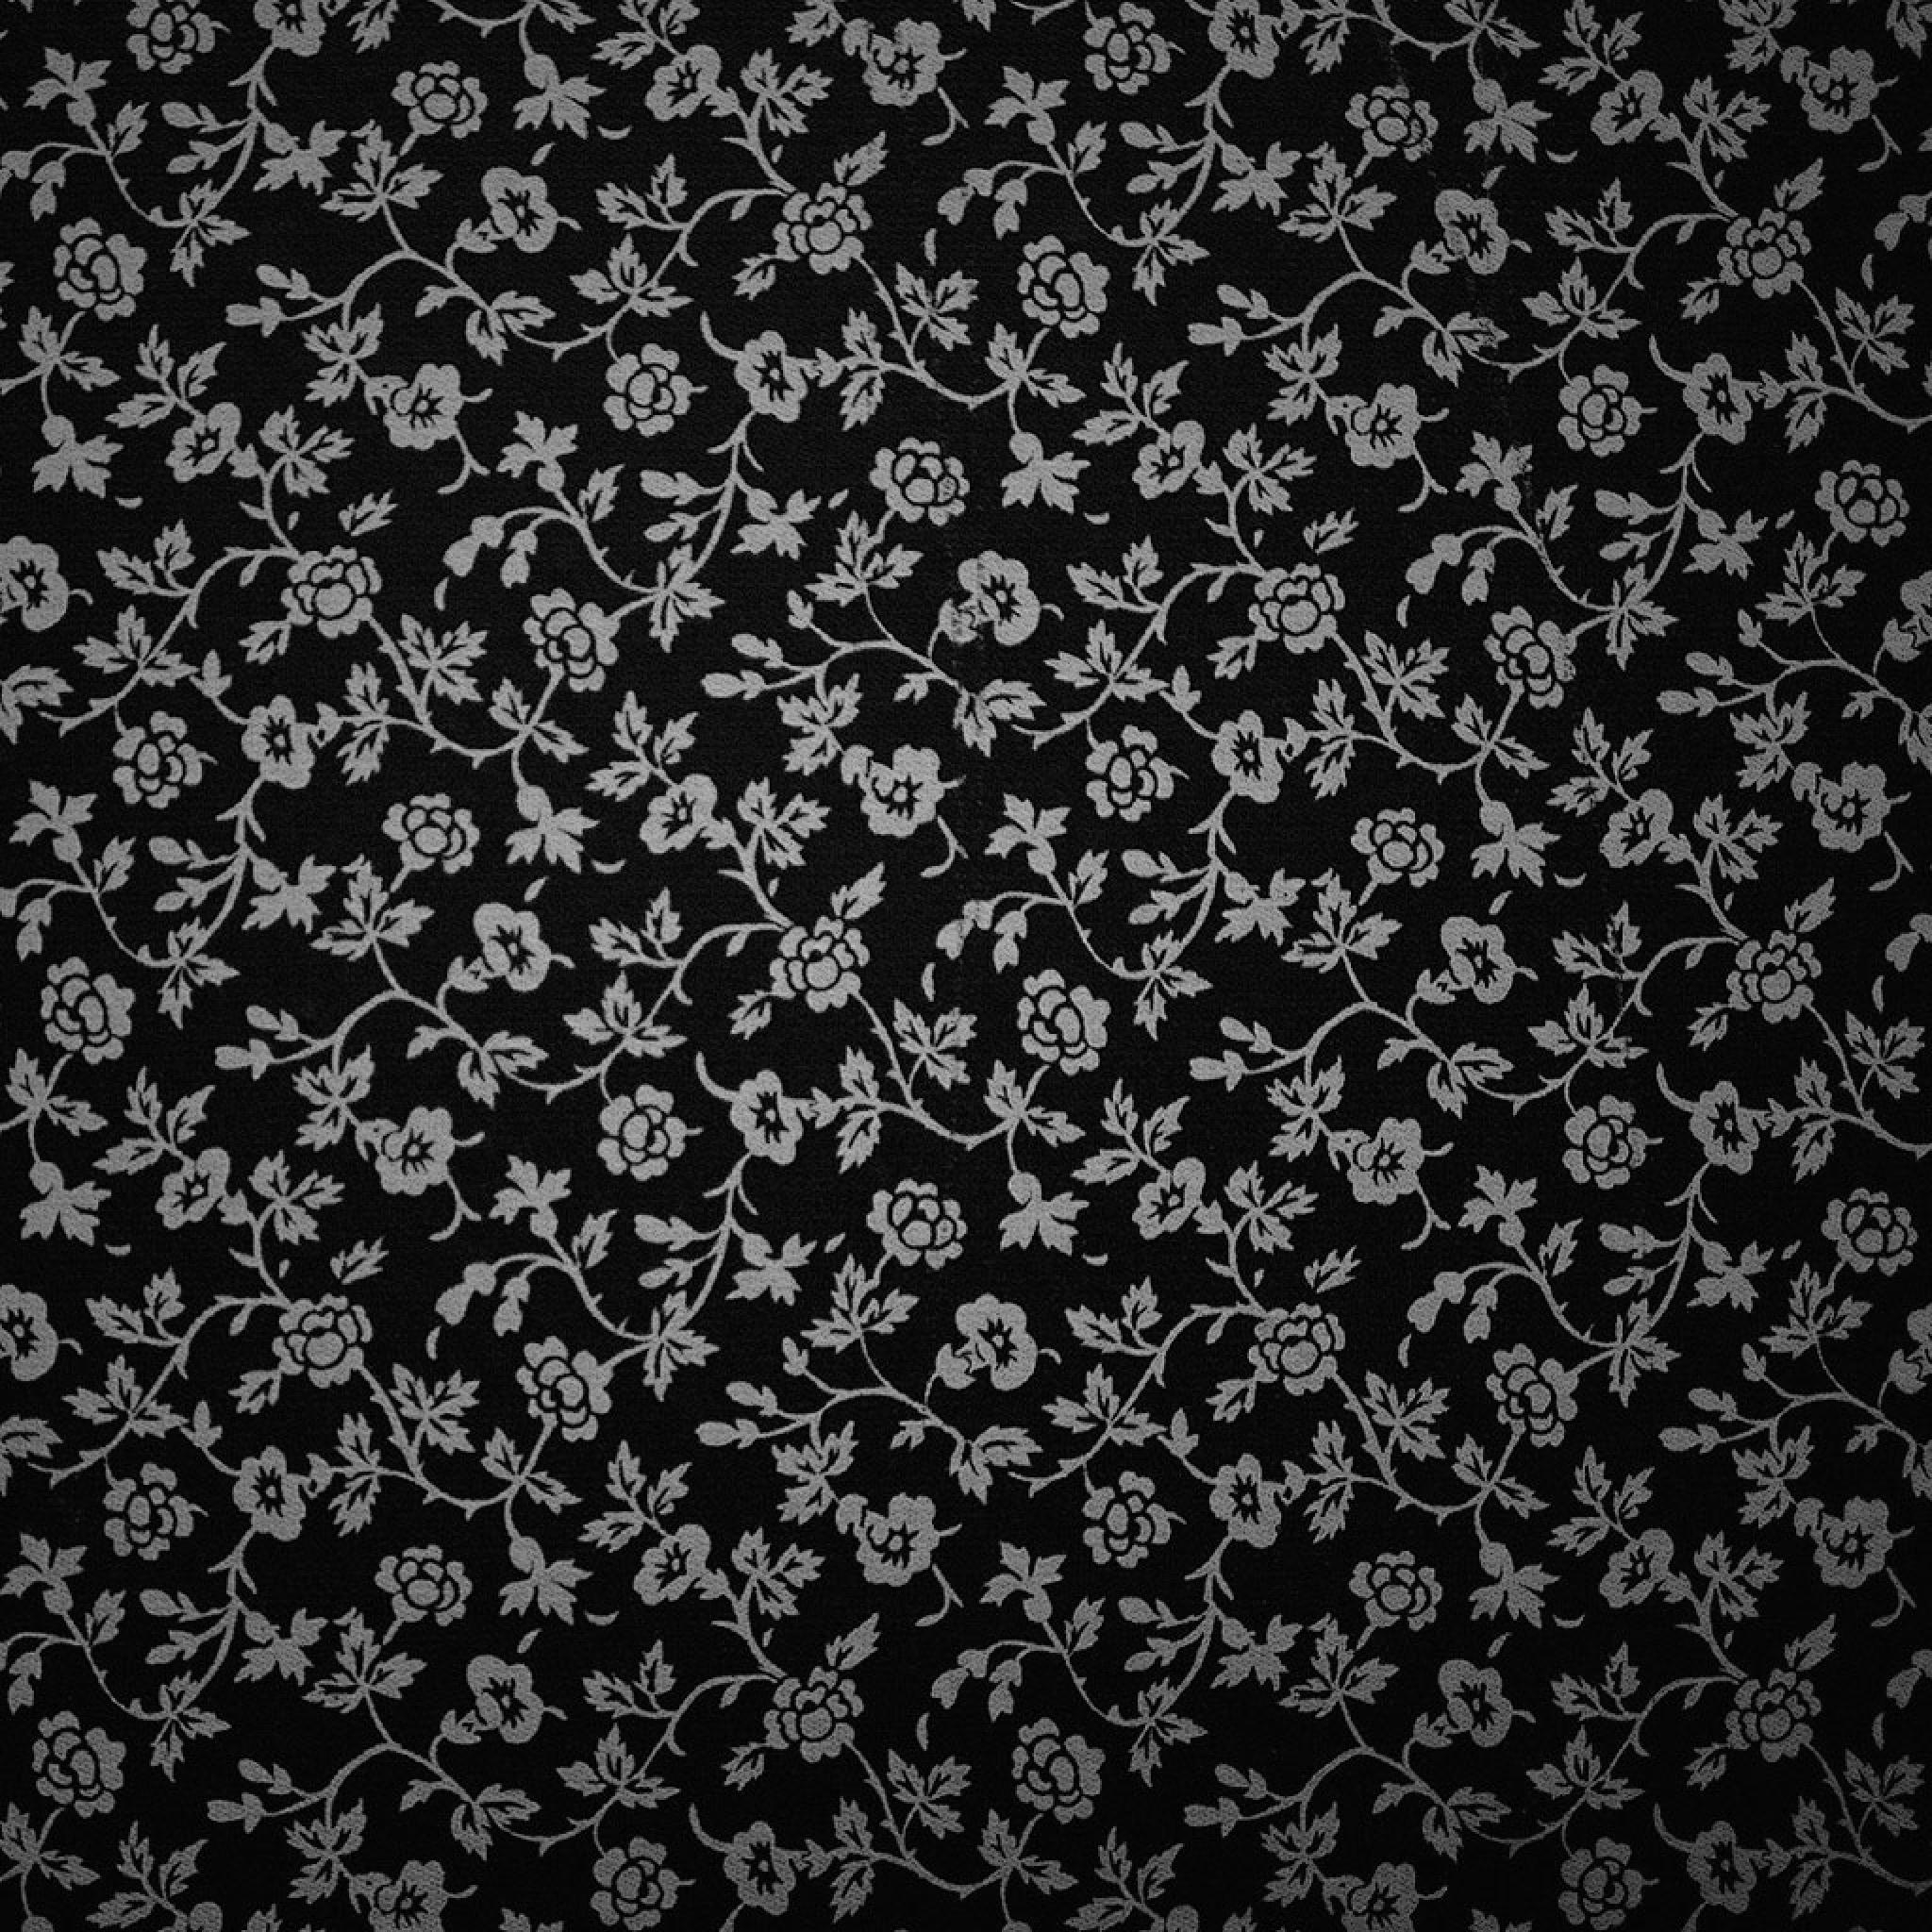 Black And White Flowers Wallpaper